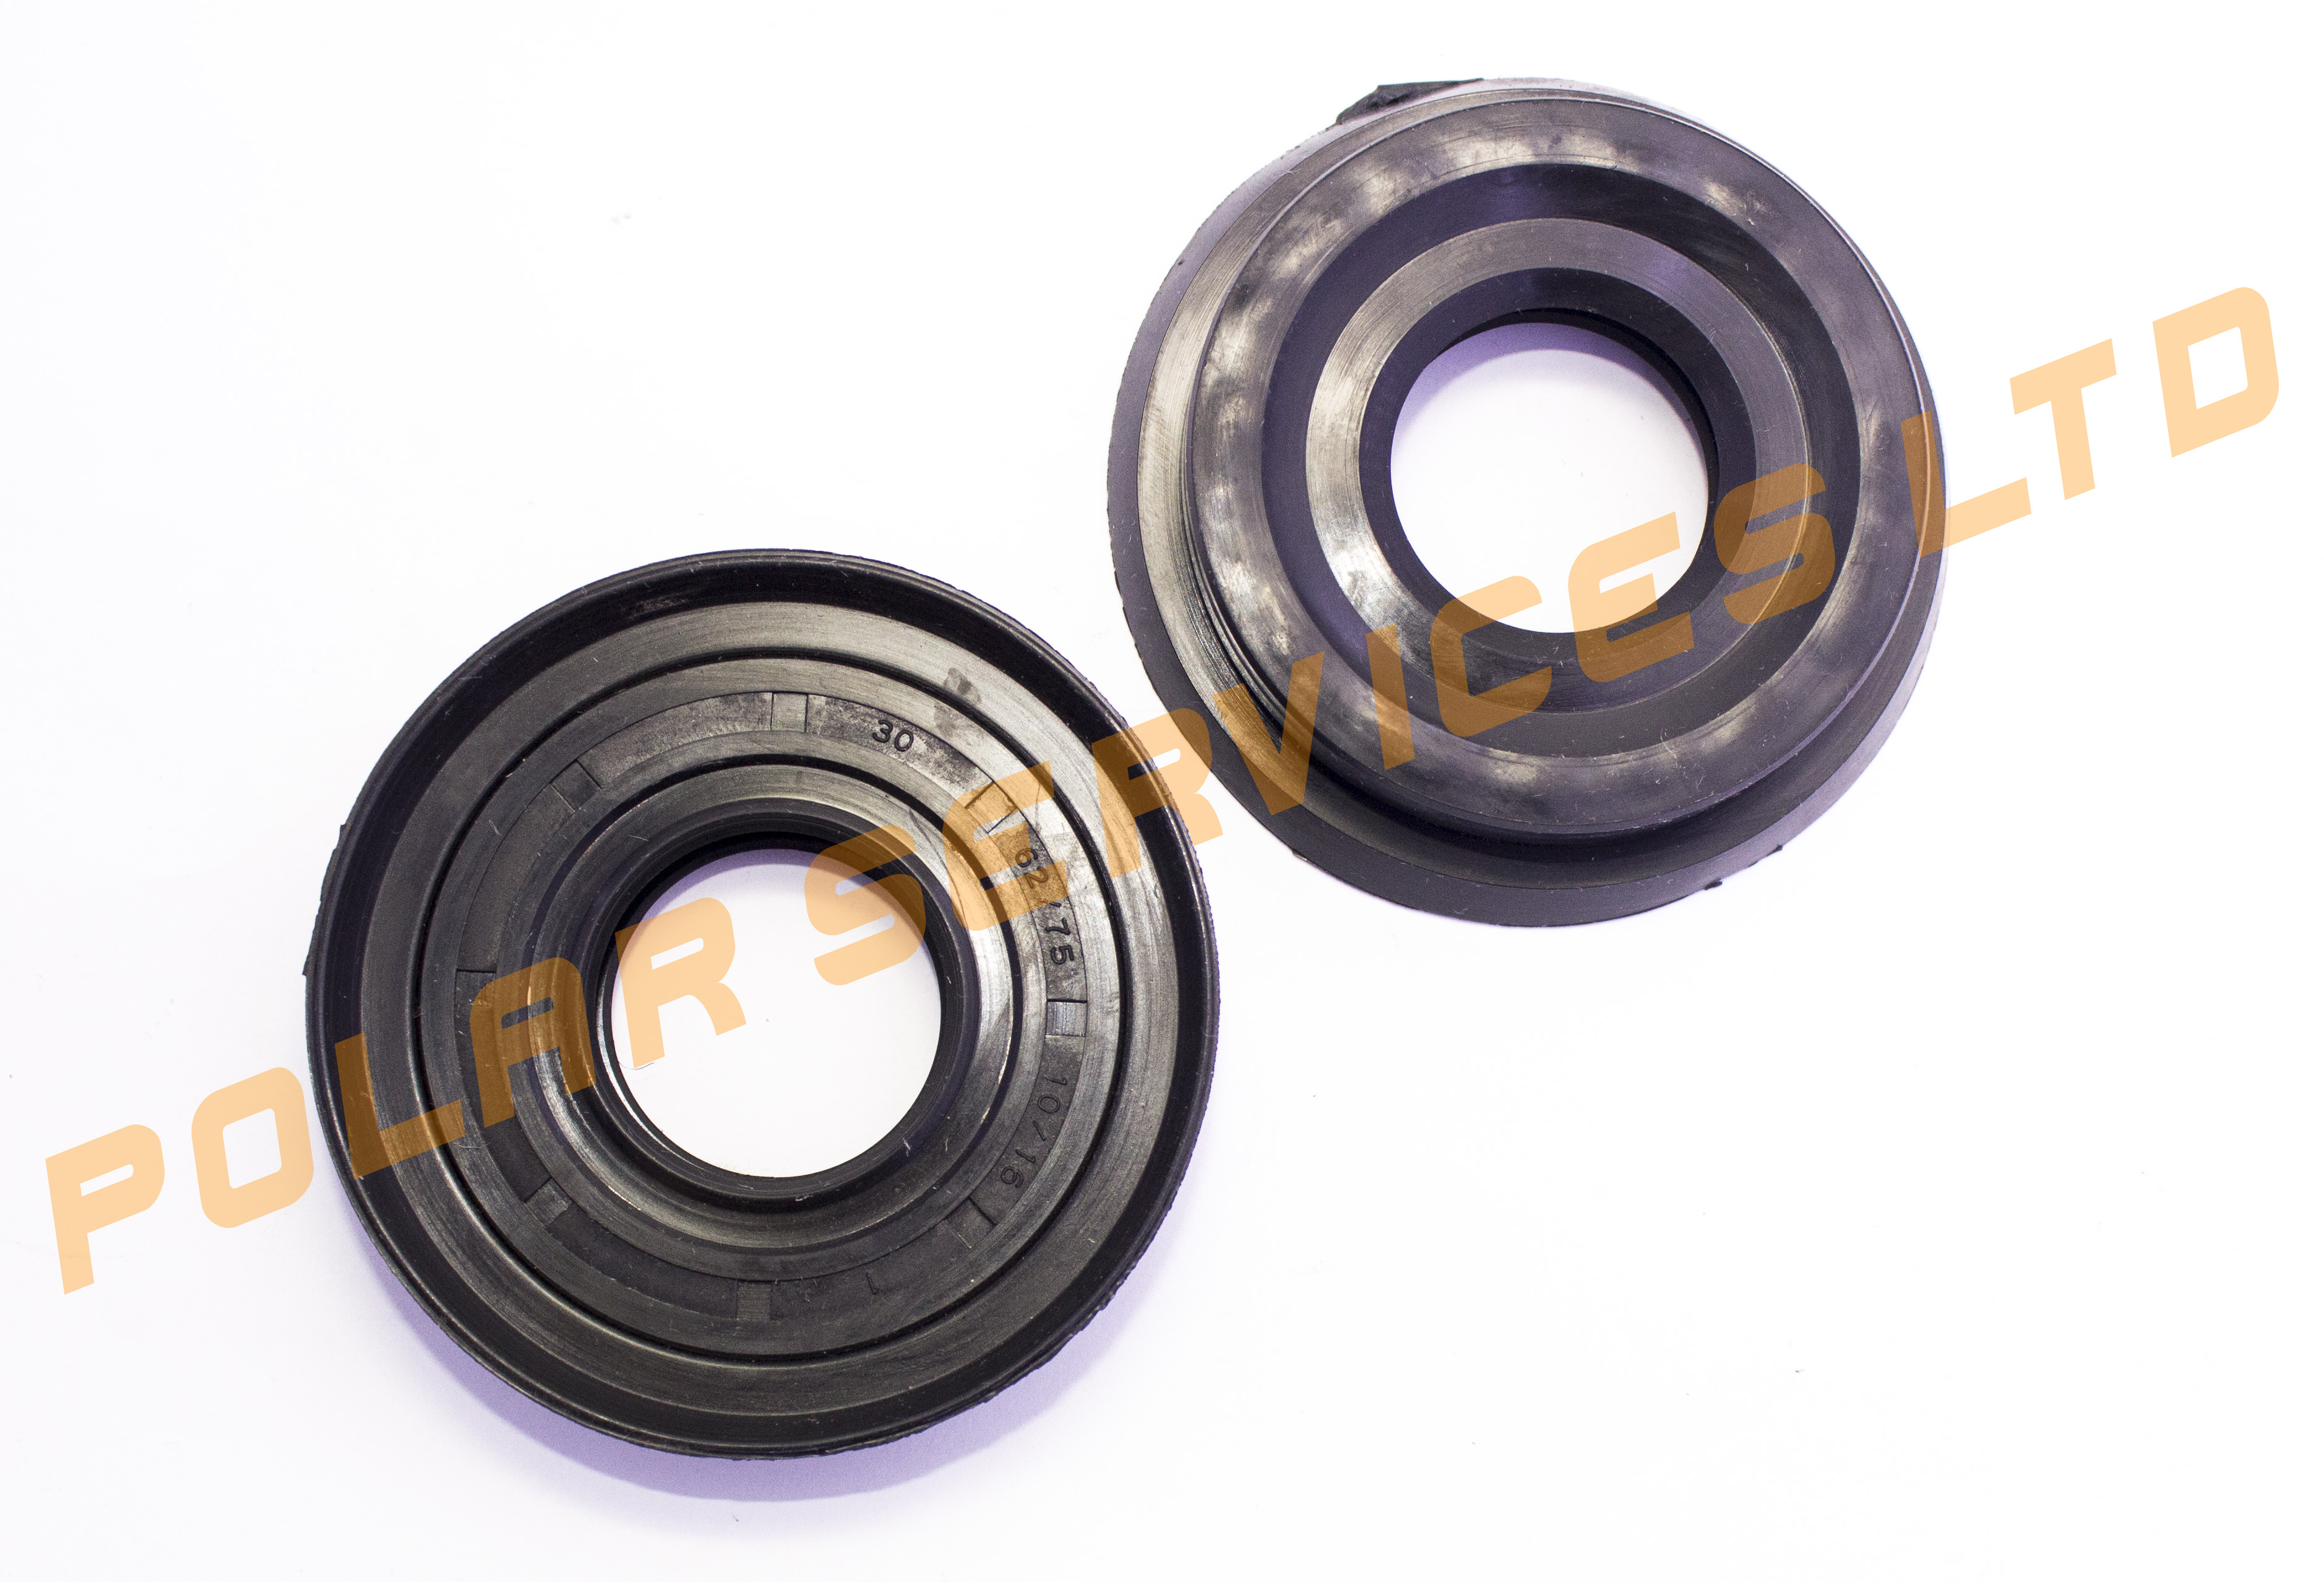 WASHING MACHINE BEARING SEAL 30X62/ 75X10/ 16 BLOOMBERG/ ZANKER Malta, 								Washing Machine Malta, Polar Services LTD Malta Malta